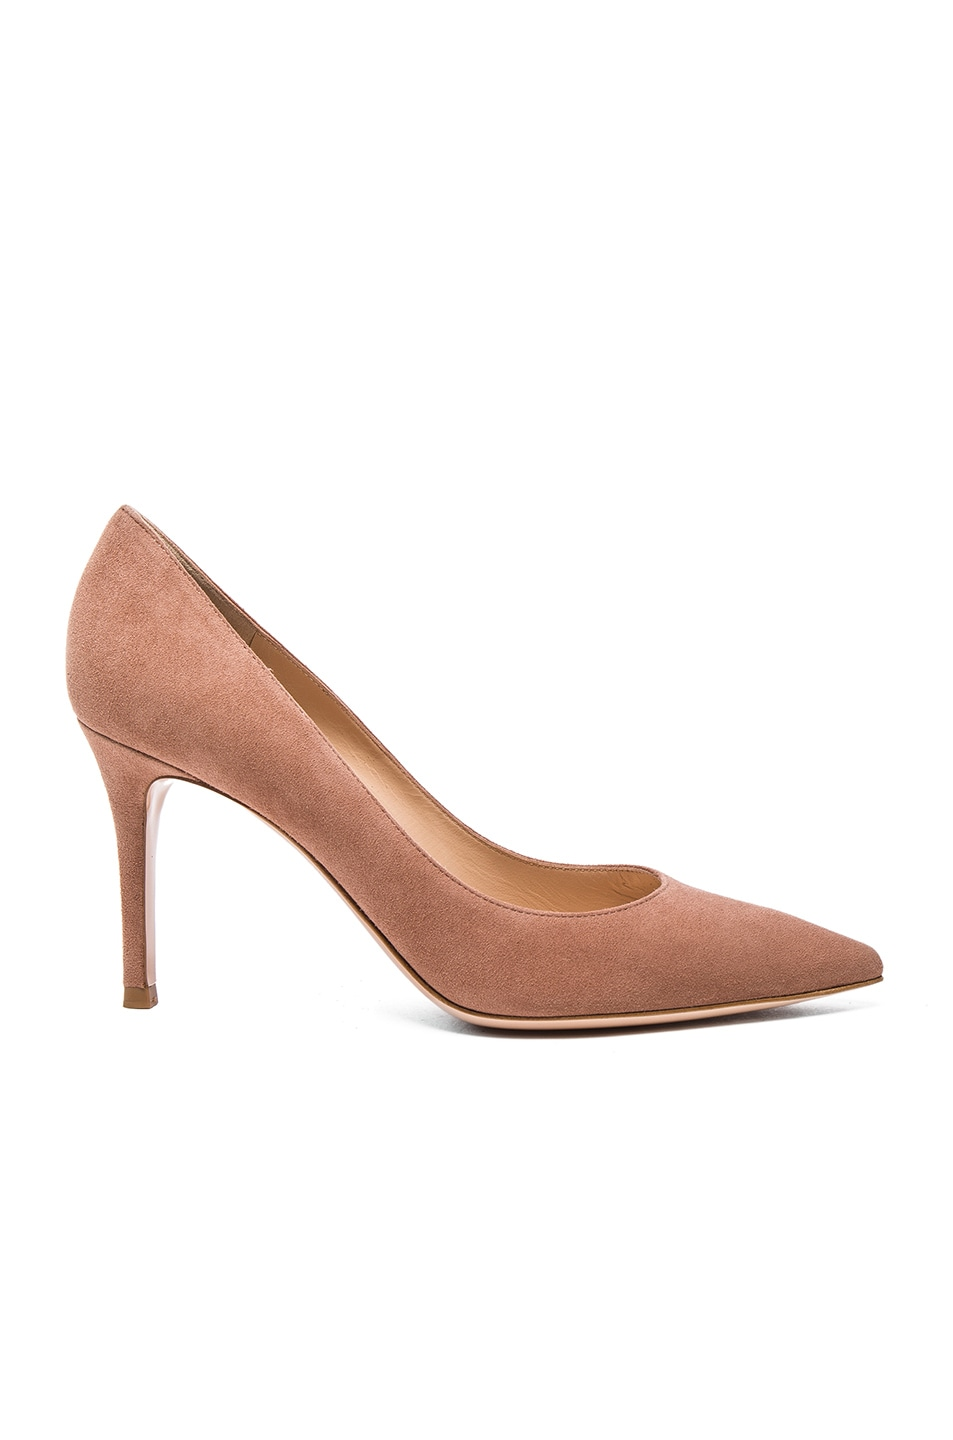 Image 1 of Gianvito Rossi Suede Gianvito Heels in Praline